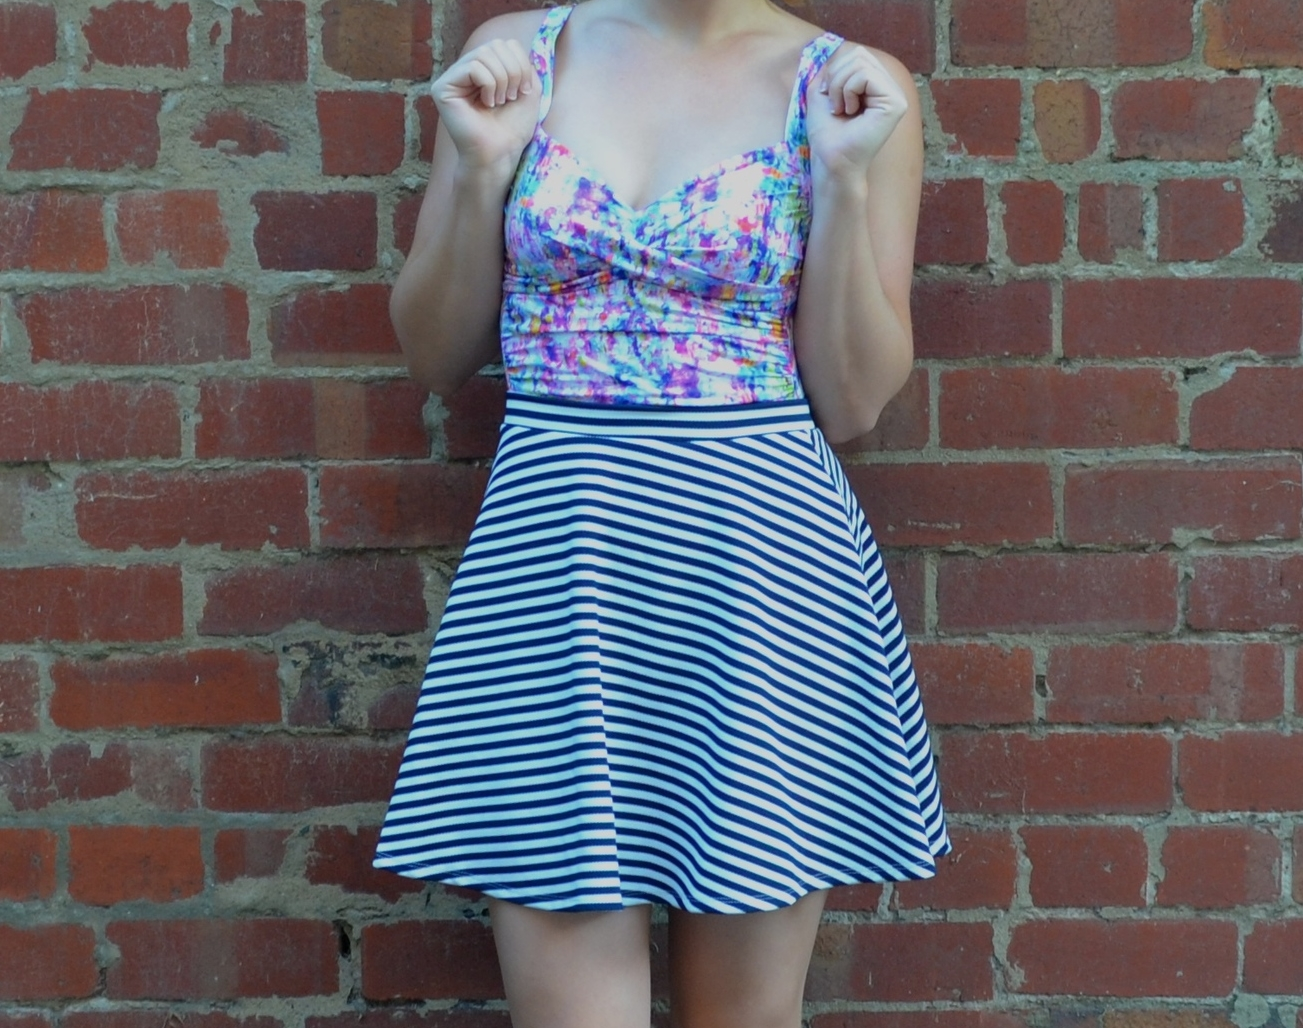 closeup-floral-swimsuit-striped-skirt-brick-wall